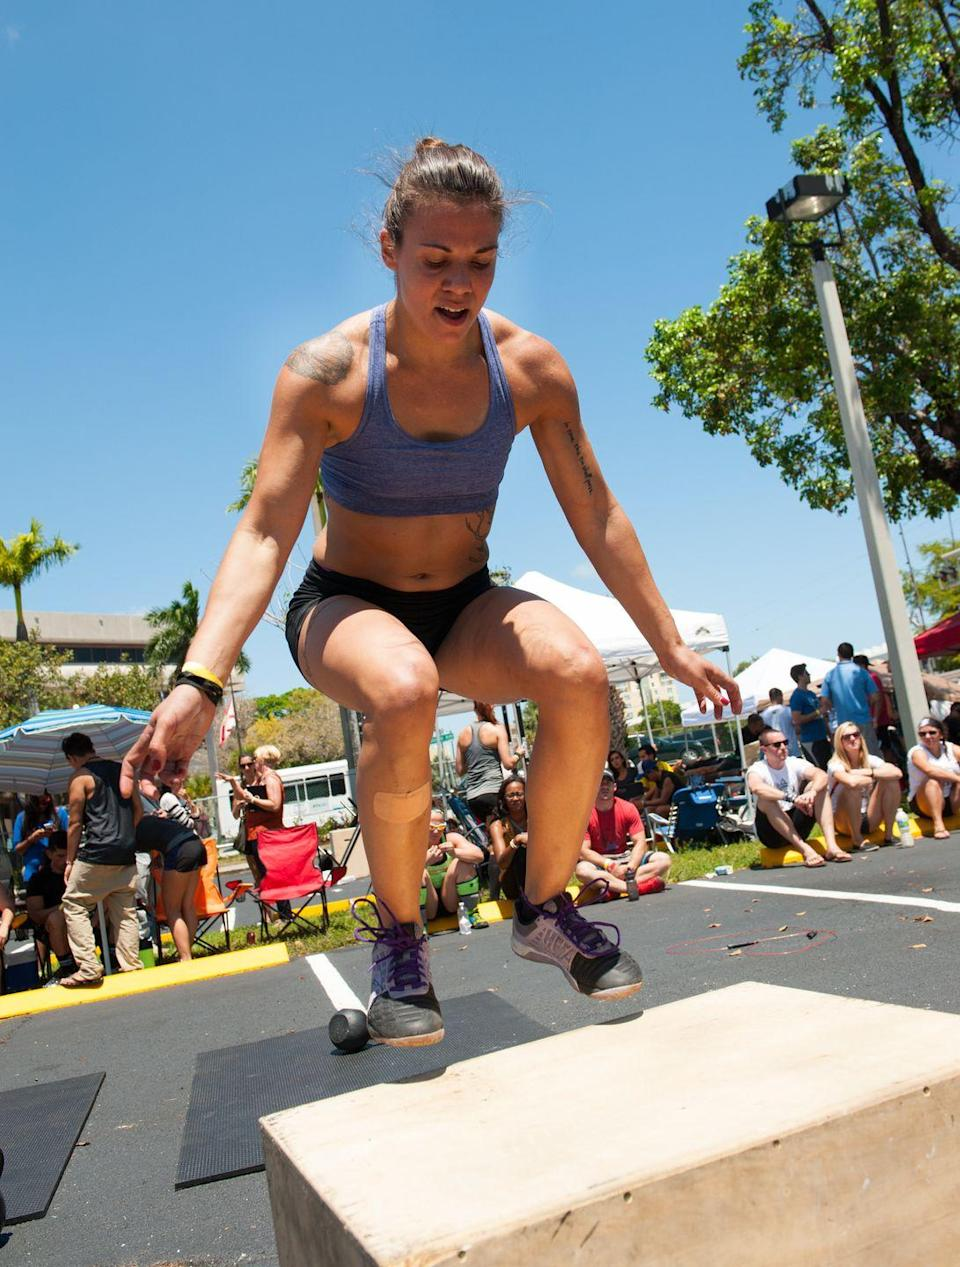 """<p>There are no bi-weeks in CrossFit. An athlete competing for the title has to perform <a href=""""https://s3.amazonaws.com/crossfitpubliccontent/CrossFitGames_Rulebook.pdf"""" rel=""""nofollow noopener"""" target=""""_blank"""" data-ylk=""""slk:all of the required events in the Open"""" class=""""link rapid-noclick-resp"""">all of the required events in the Open</a>. </p>"""